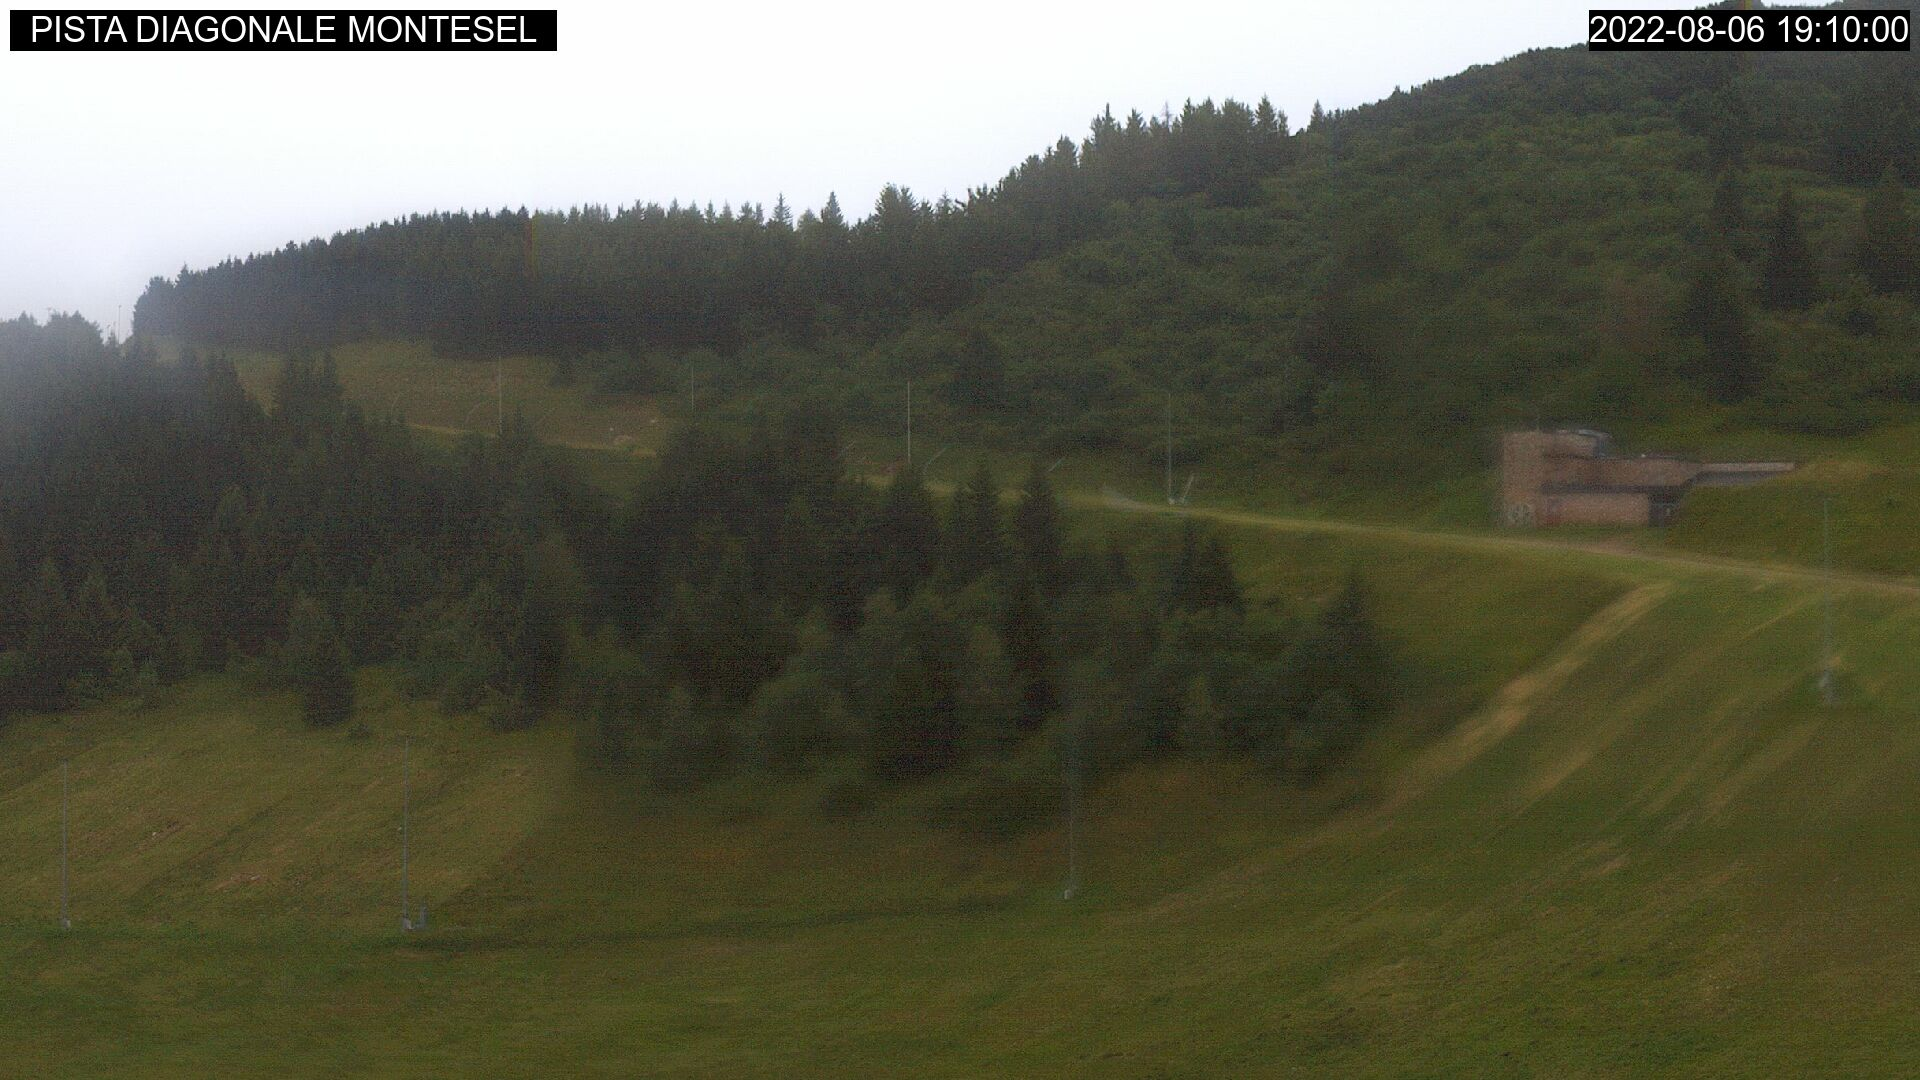 Webcam pista Diagonale Montesel